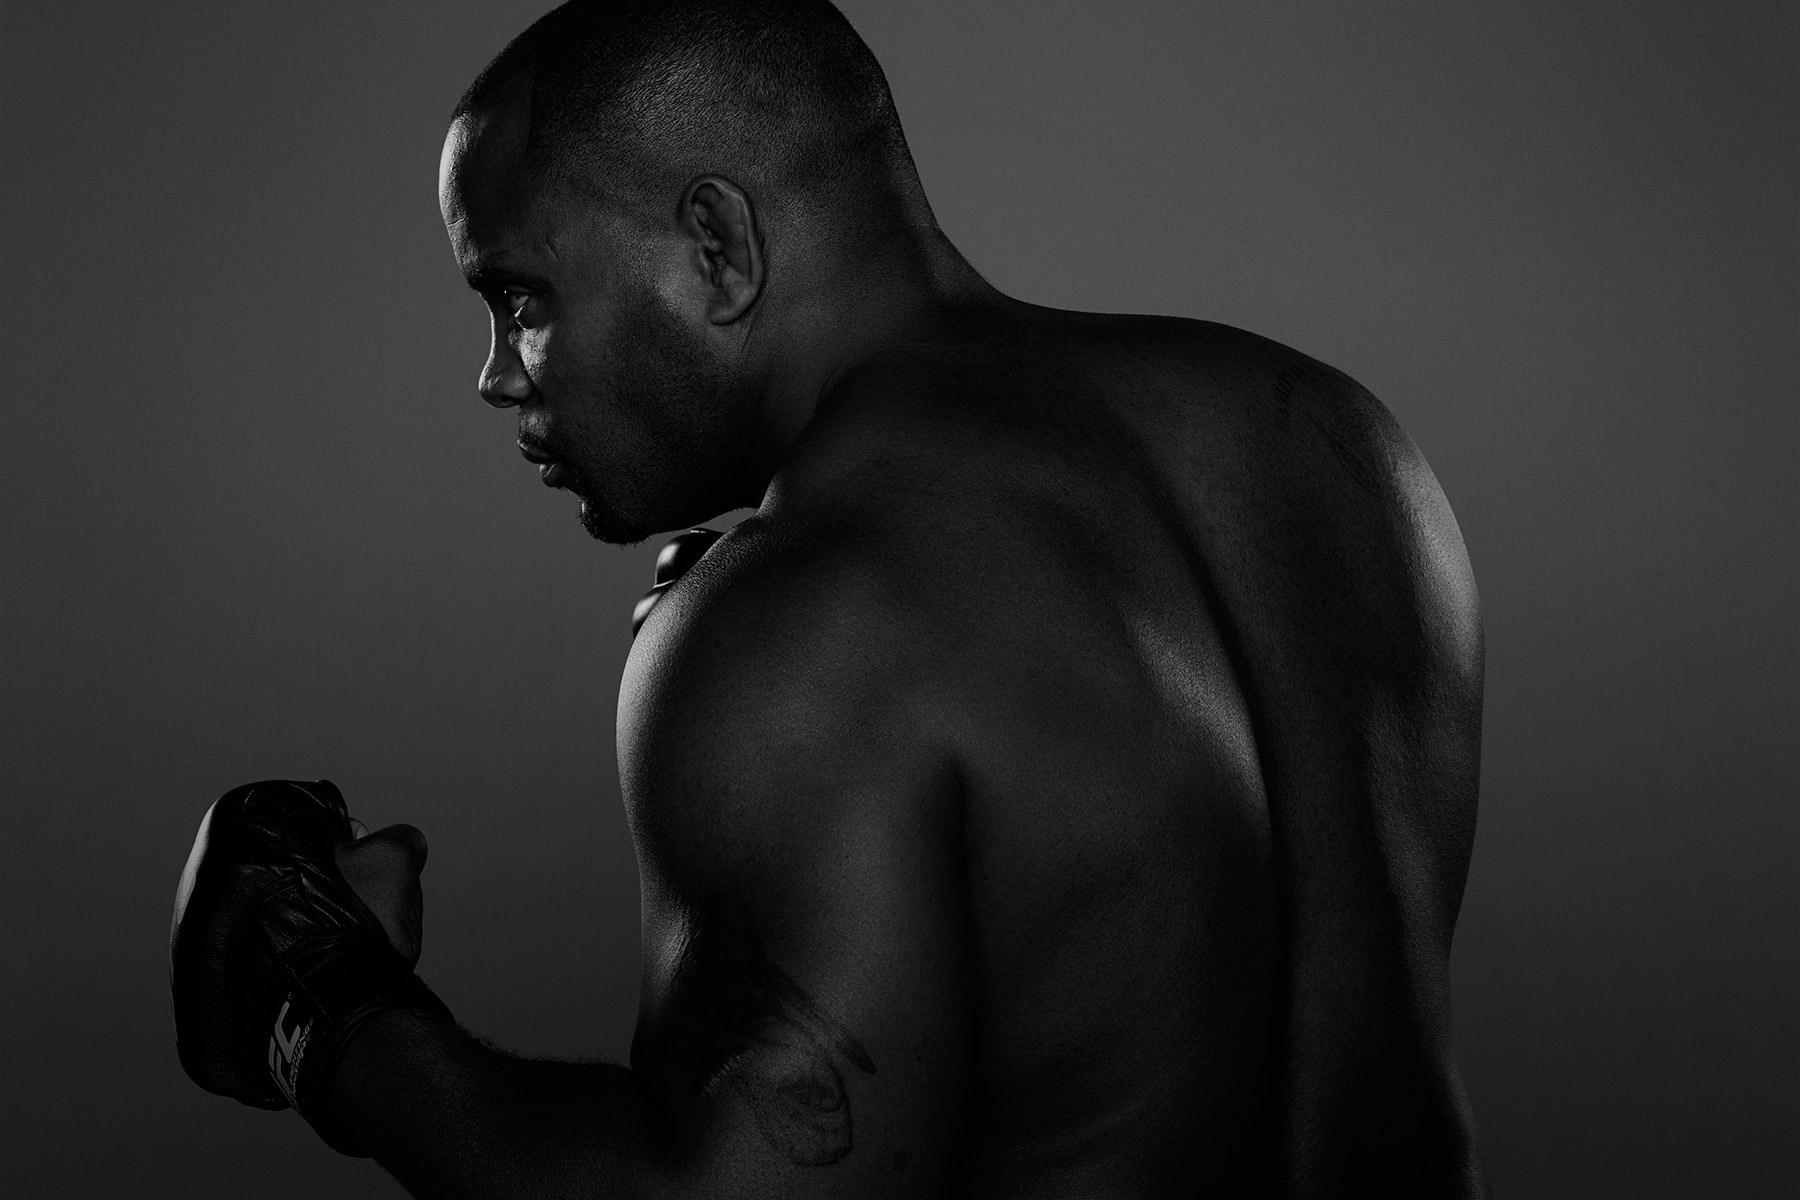 UFC fighter, Daniel-Cormier photographed by Scott Council